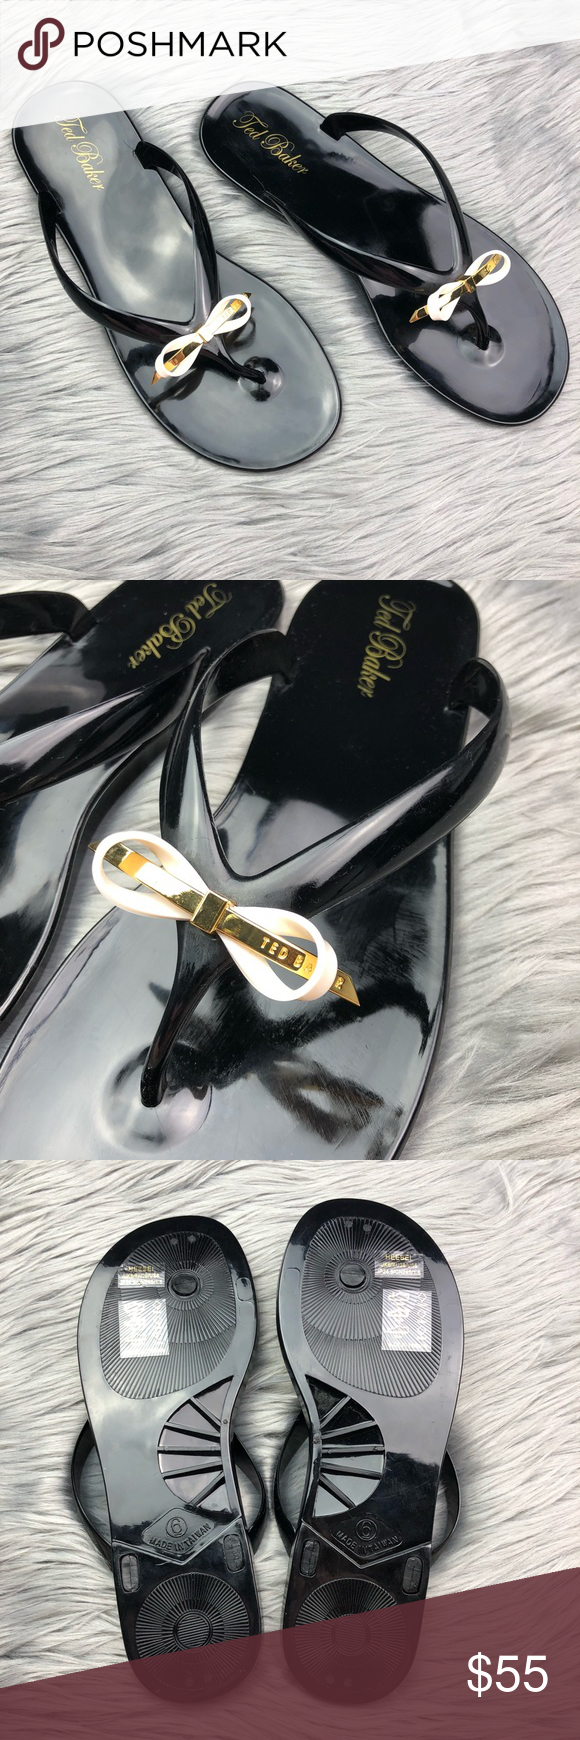 d339c77010c195 Ted Baker Heebei Black Jelly Flip Flop Sandals •Ted Baker Heebei Black  Jelly Flip Flop Sandals •Women s Size US 8 (UK 6) •In excellent preowned  condition ...